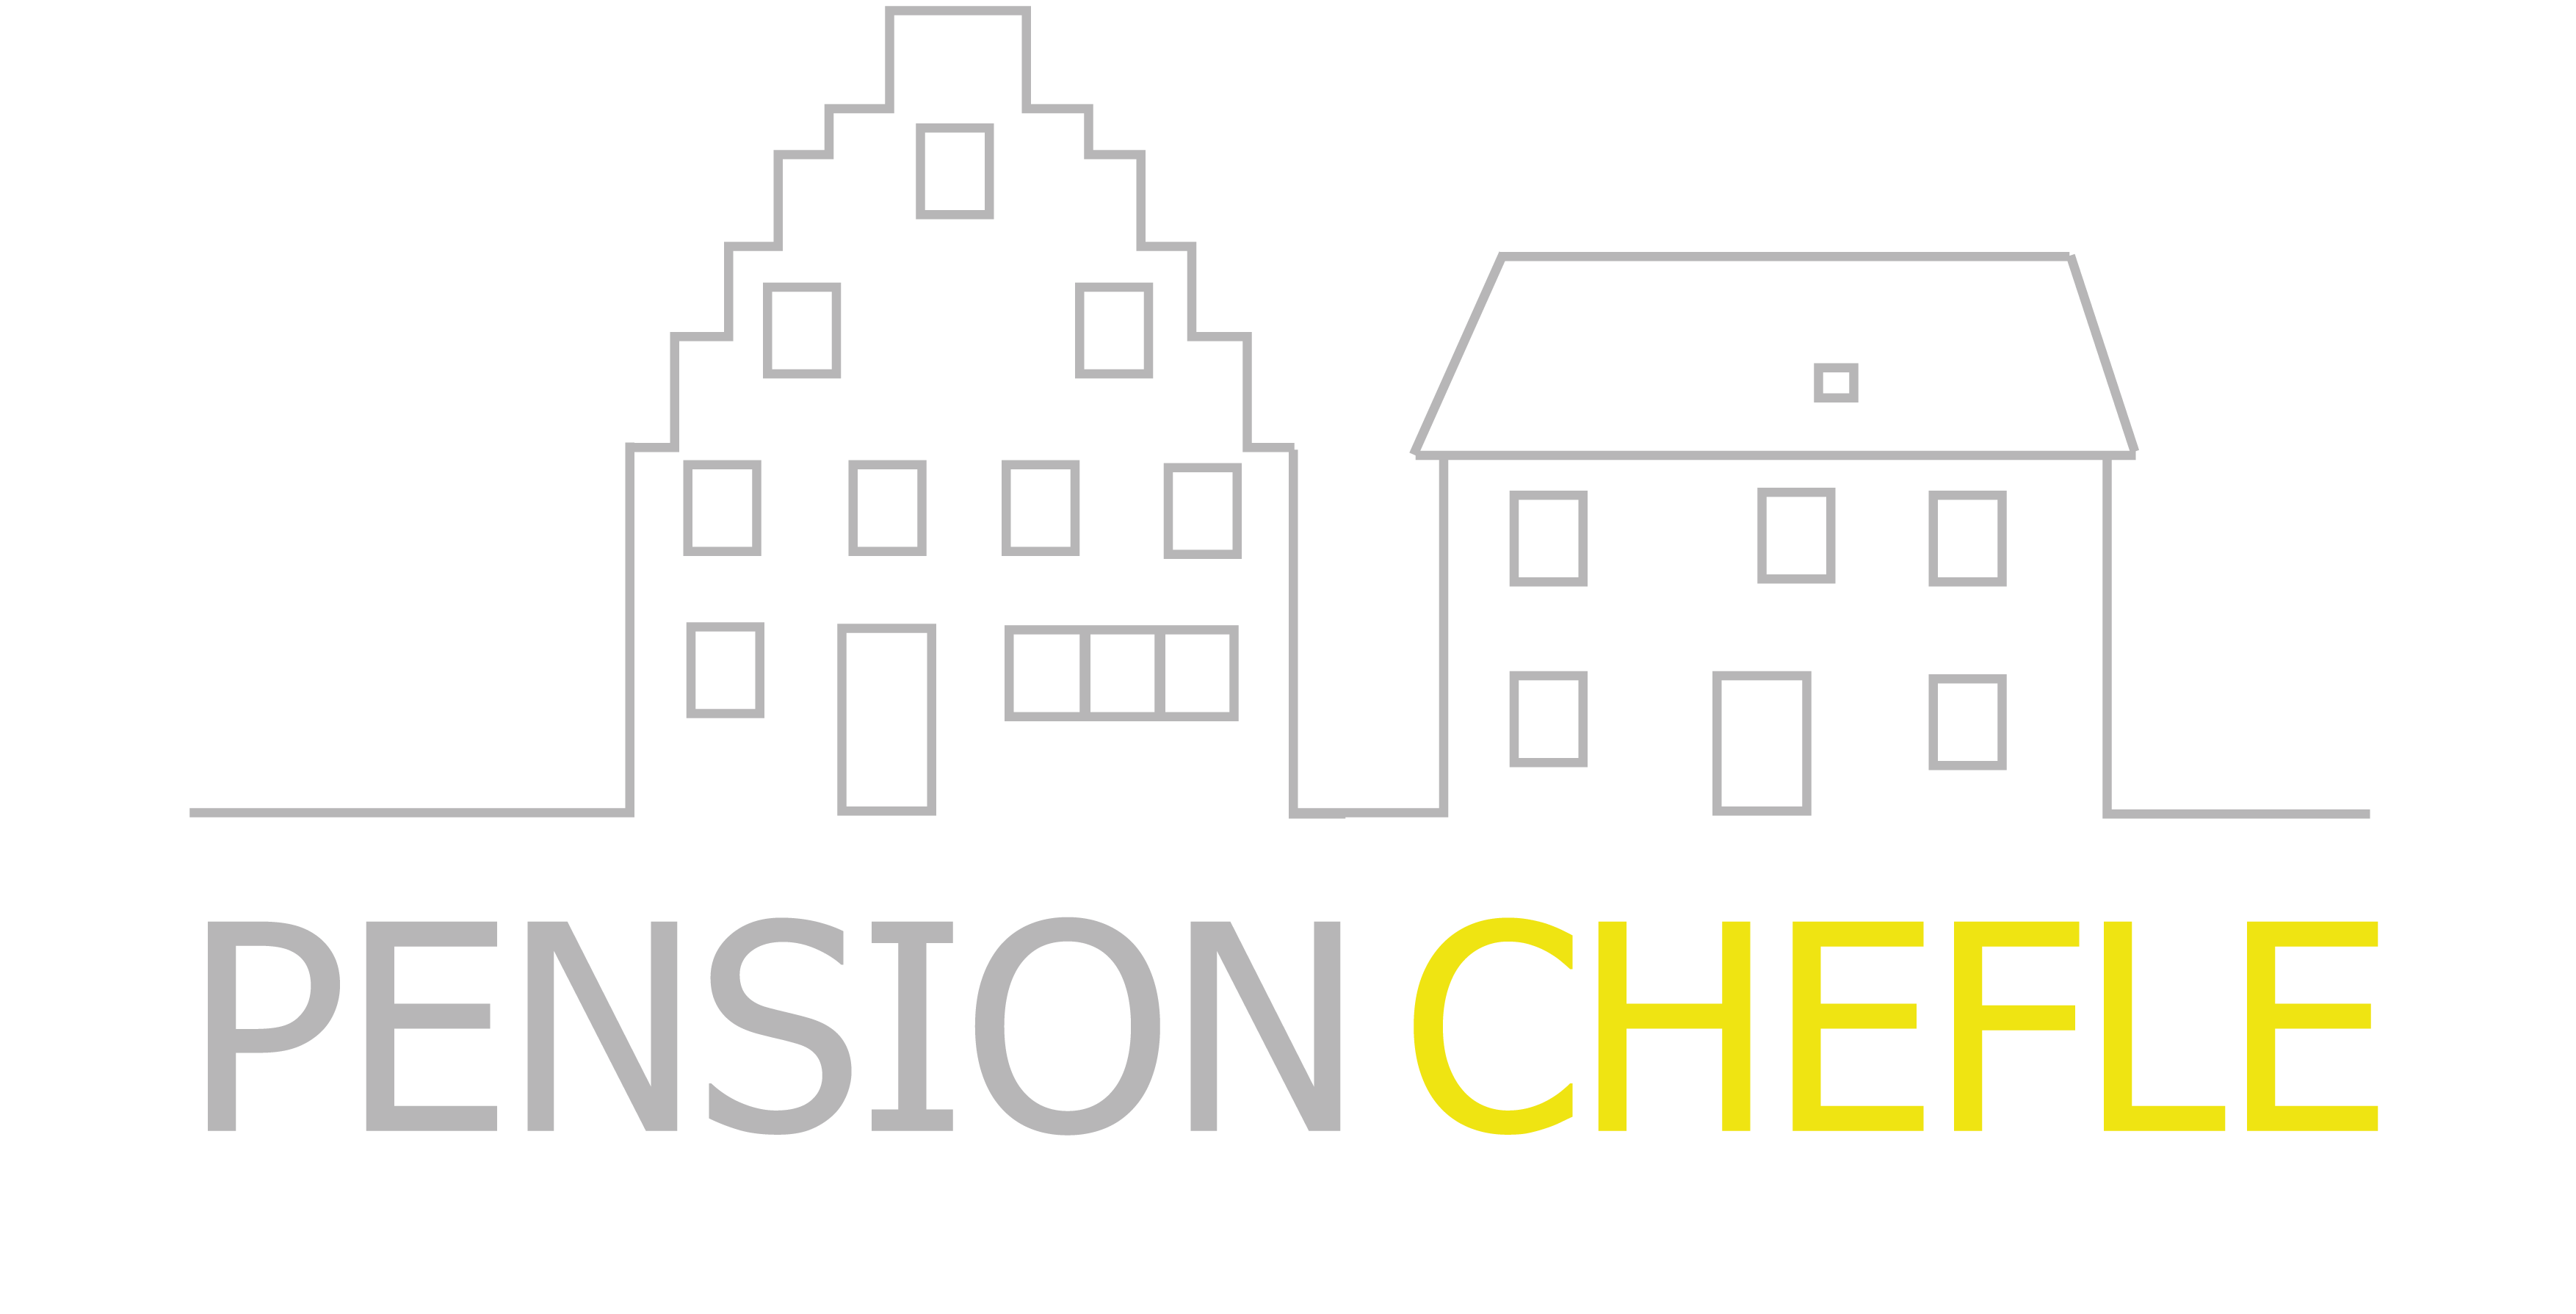 Pension Chefle